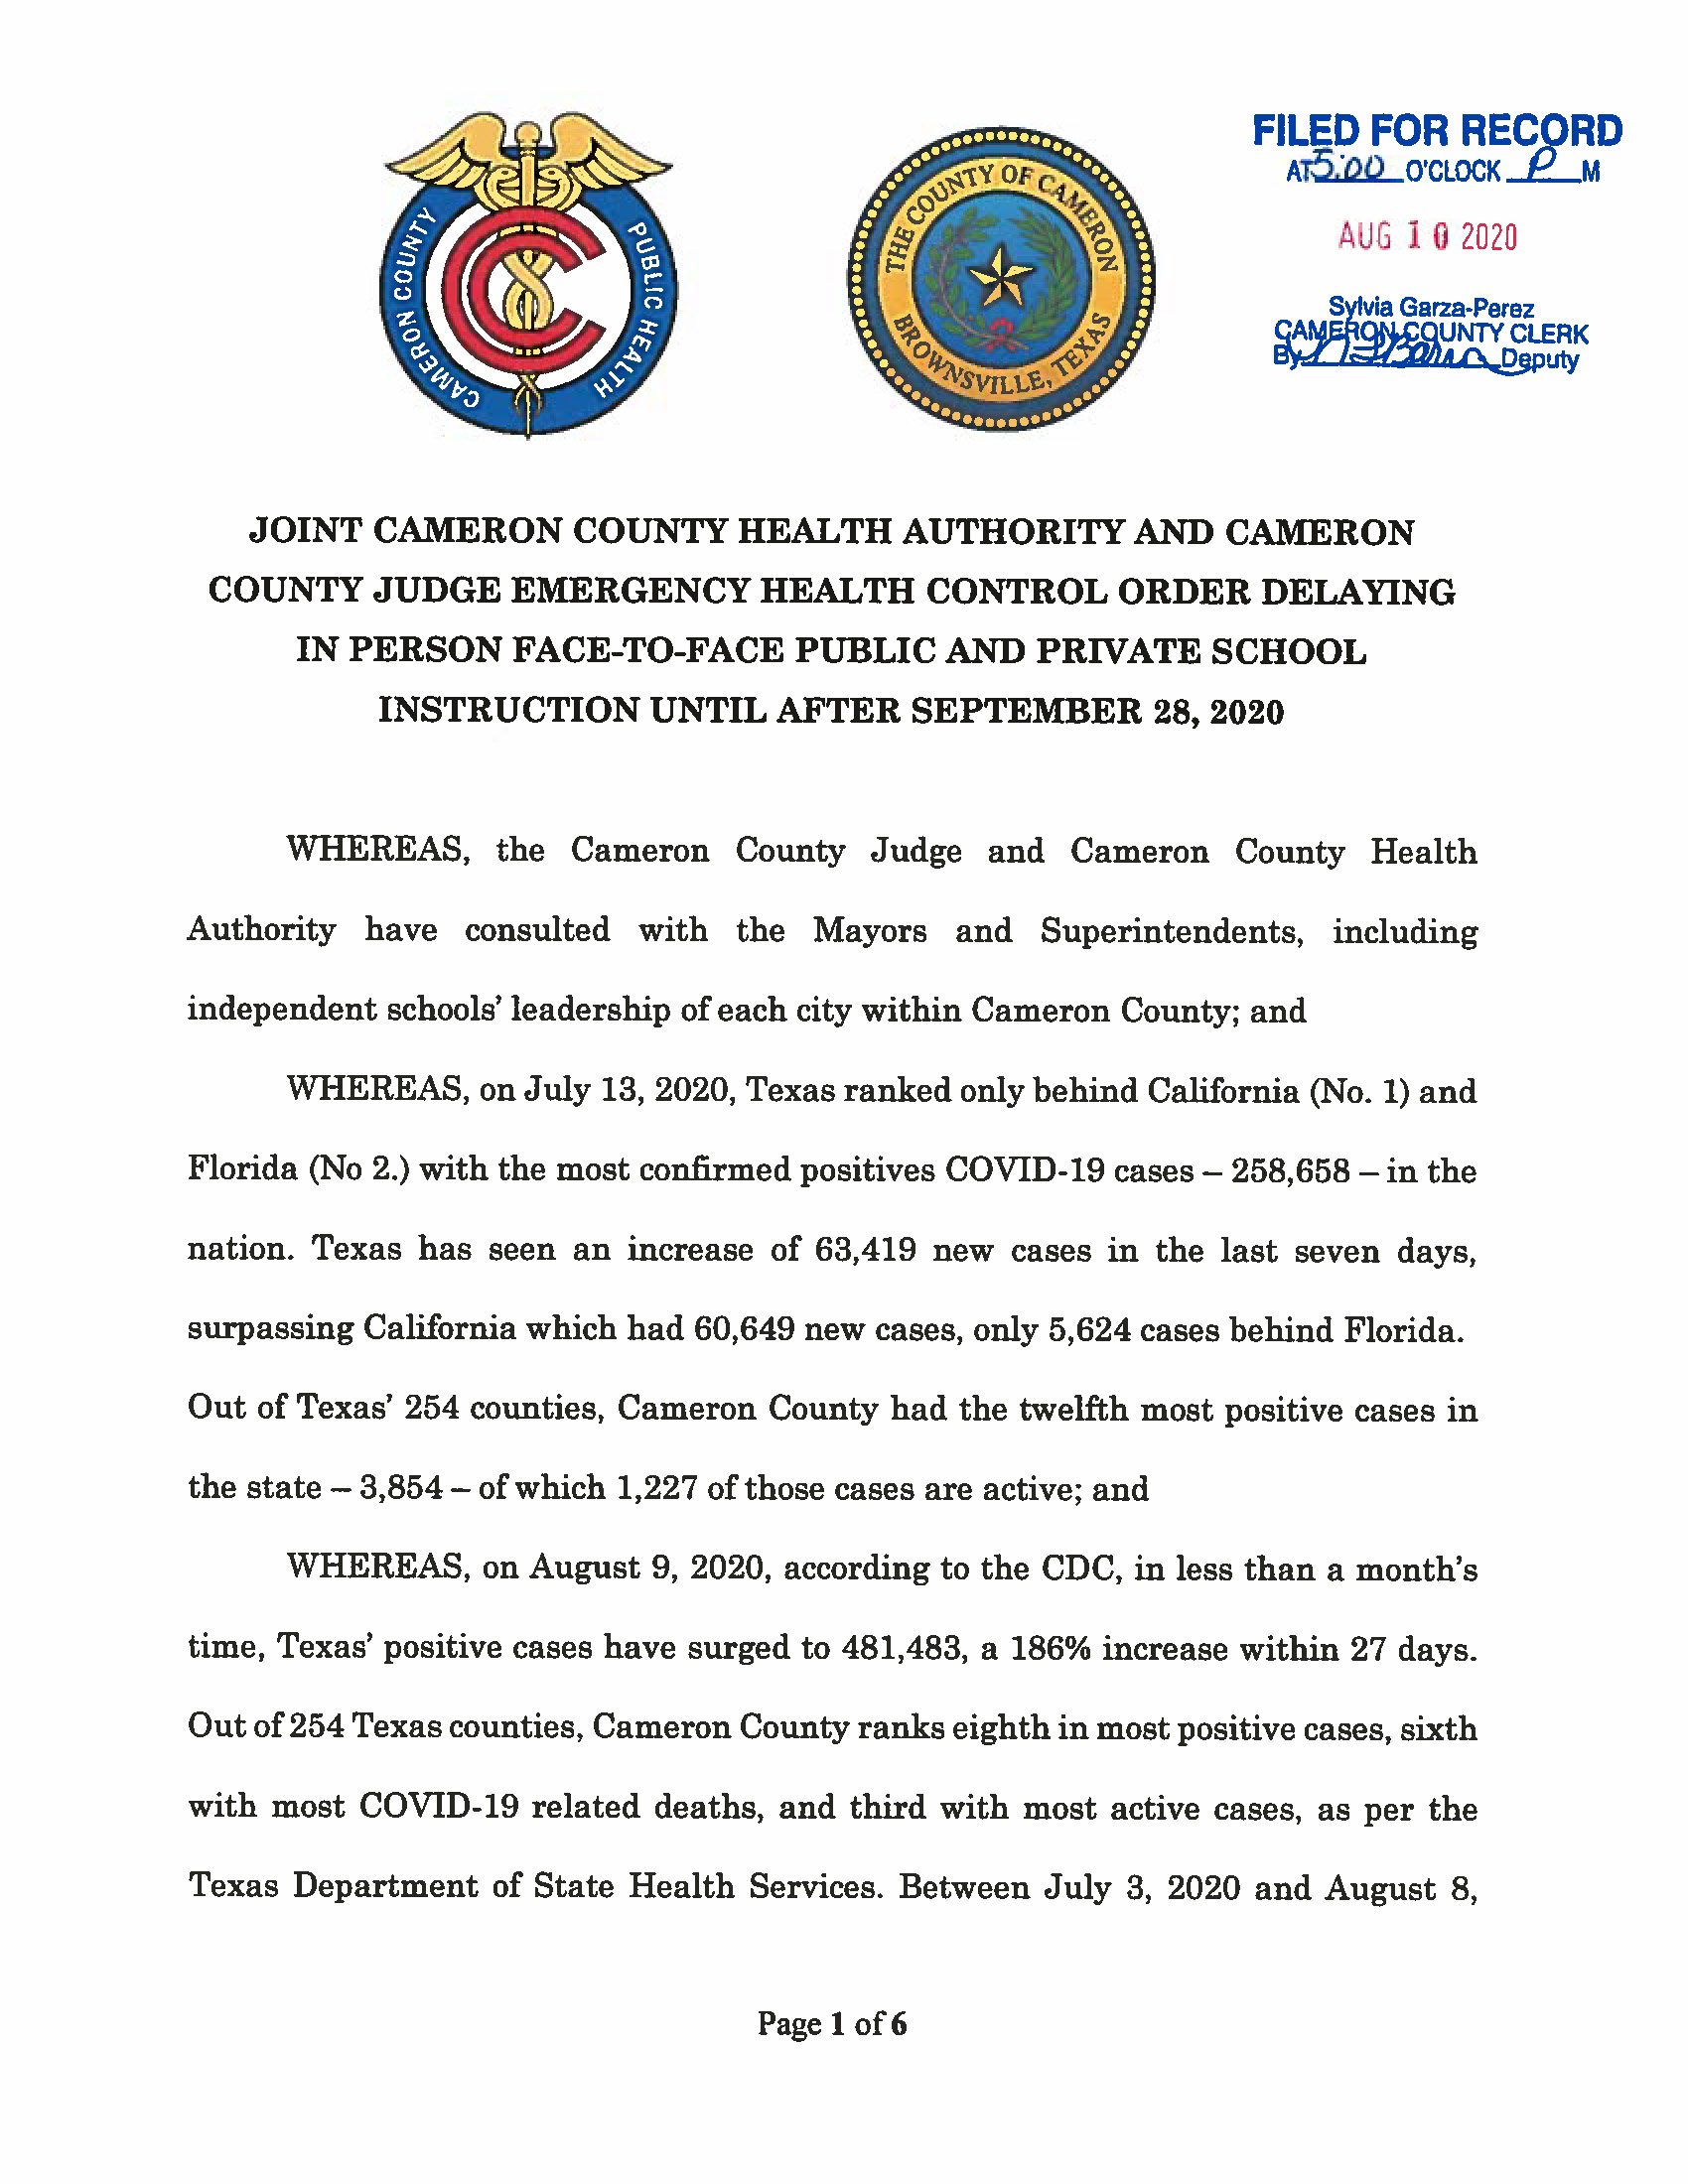 08.10.2020 ORDER Joint Cameron County Health Authority And Cameron County Judge Emergency Health Control Order Page 1